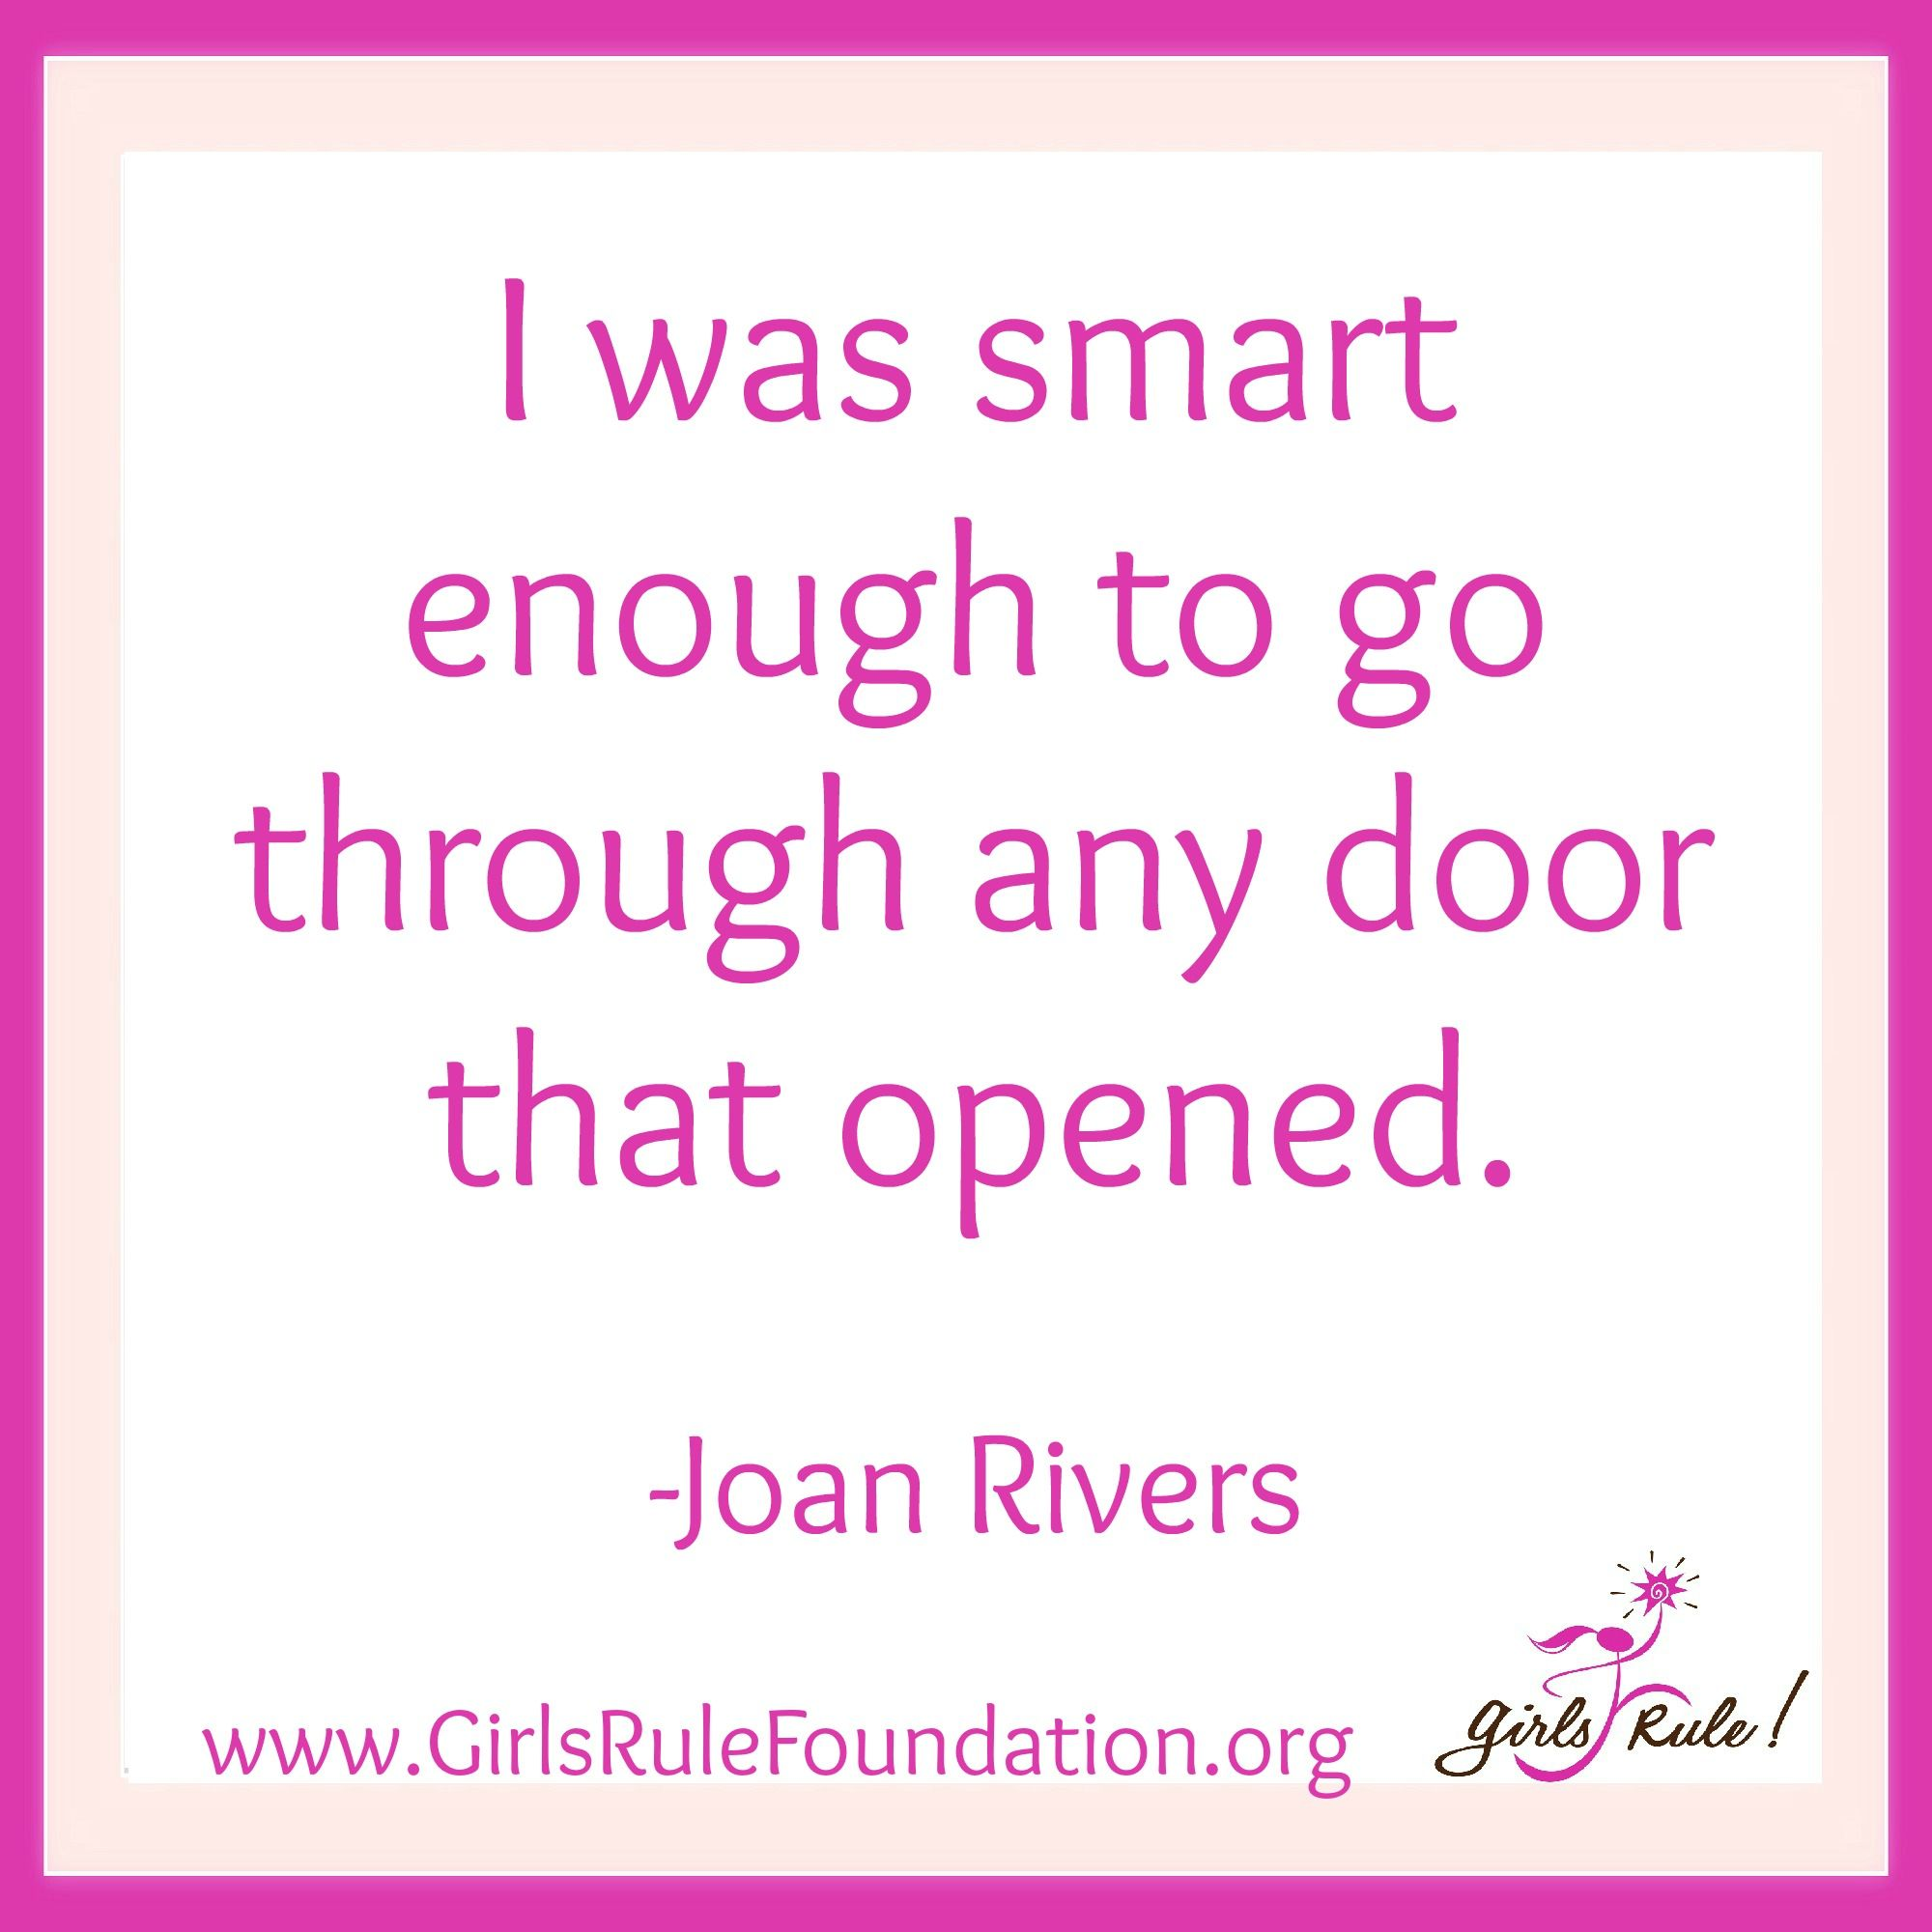 """I was smart enough to go through any door that opened."" -Joan Rivers  #girlsrule #brilliantbeautifulbold #knowyourworth #selfcare #dreambig"